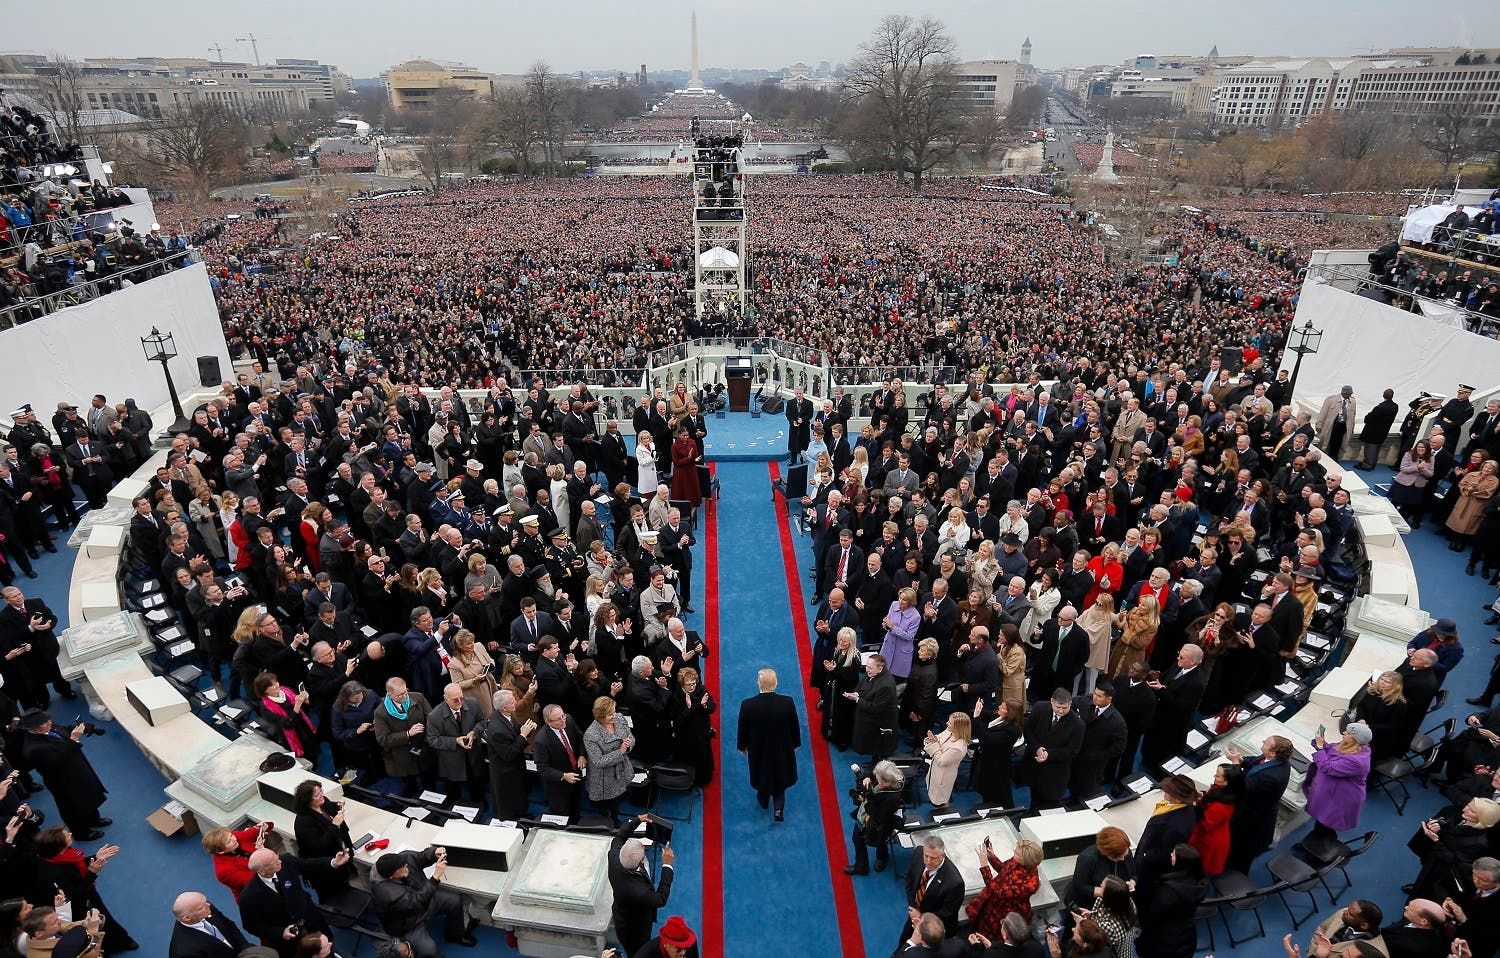 Donald Trump arrives for the inauguration ceremonies swearing him in January 20, 2017, there was some dispute over the number of people who attended – from this point his presidency has been shrouded in controversy  (Photo: Reuters/Brian Snyder)